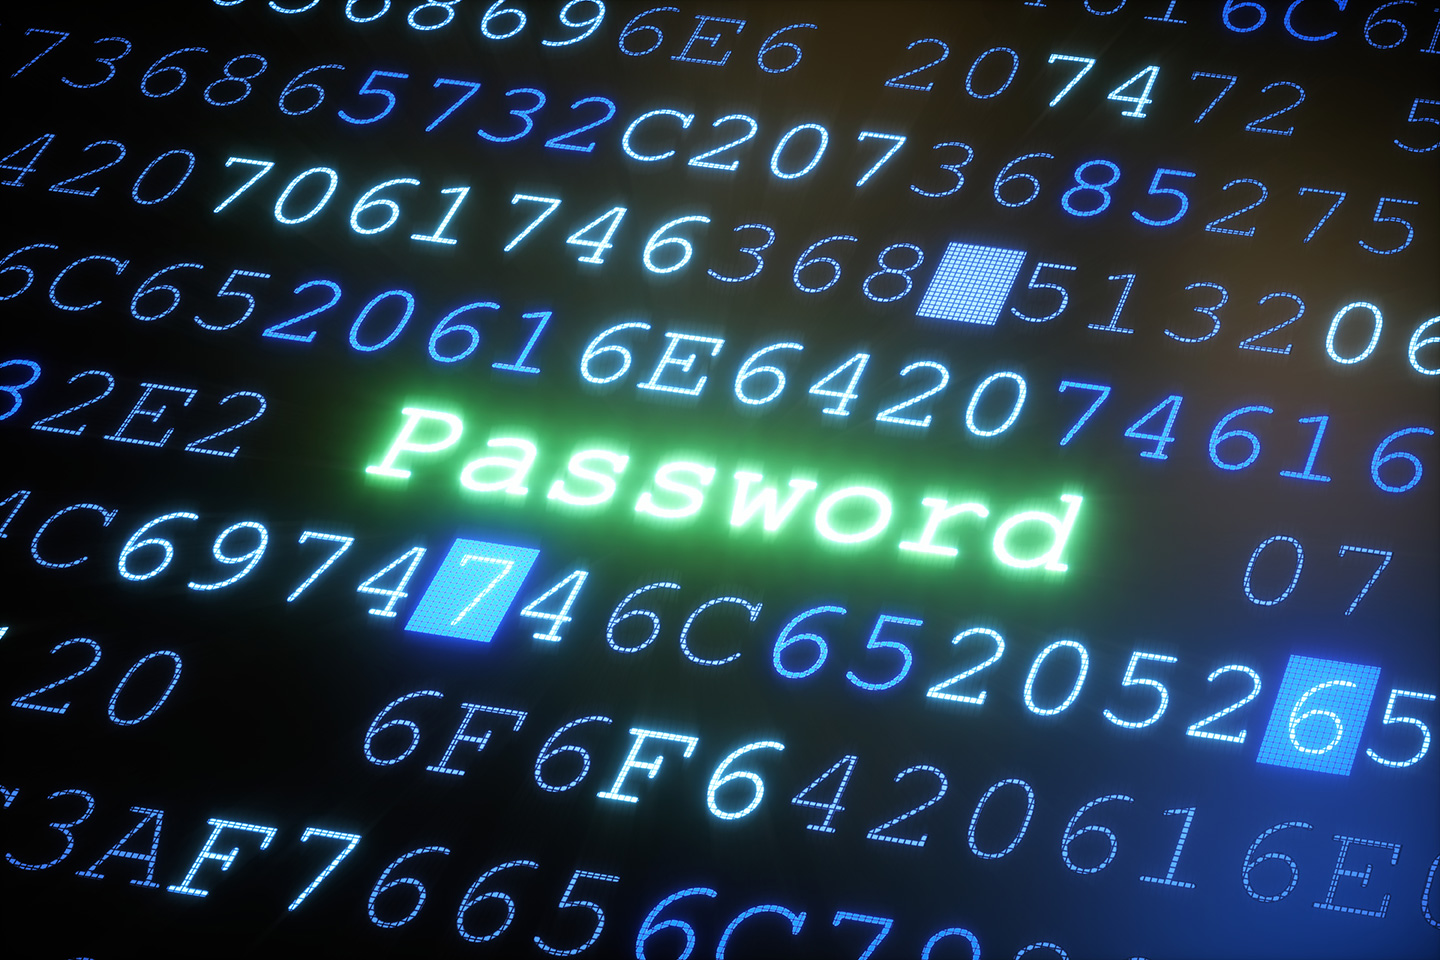 Professor Kevin Curran, Ulster University in an interview on BBC Radio Foyle about the National Cyber Security (NCSC) which published its 'UK cyber survey' revealing the most hackable passwords that people are still using today.